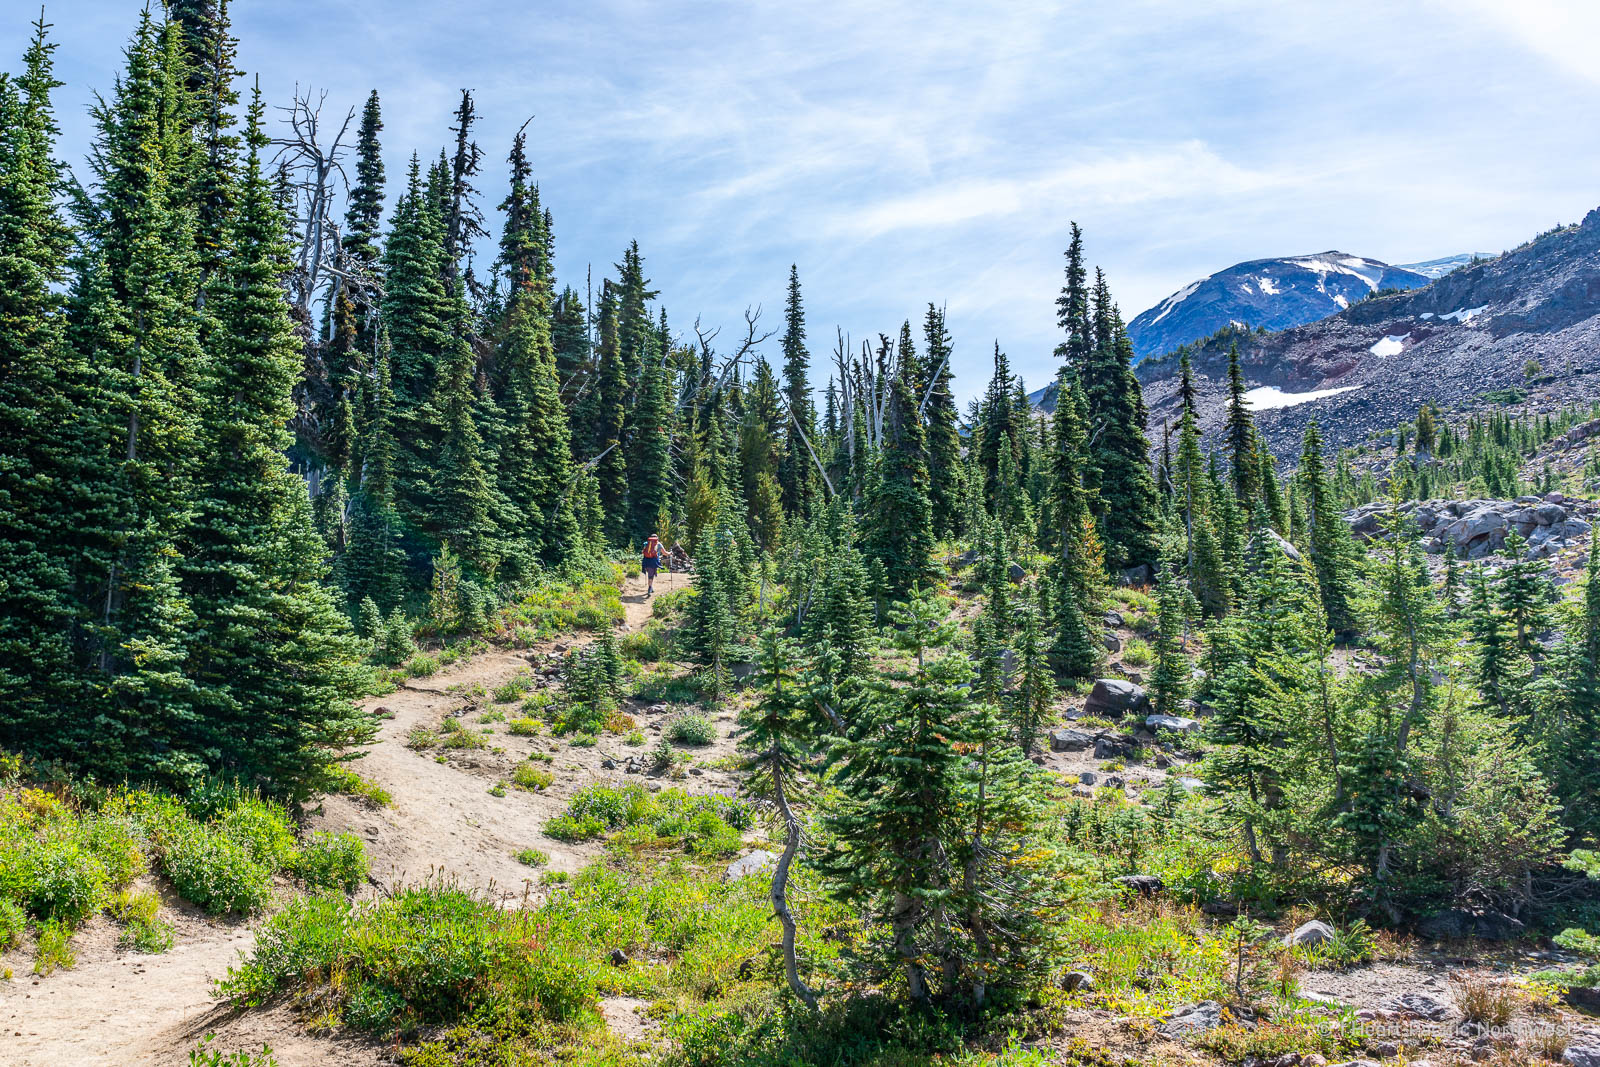 Mount Adams - Killen Creek backpacking trip